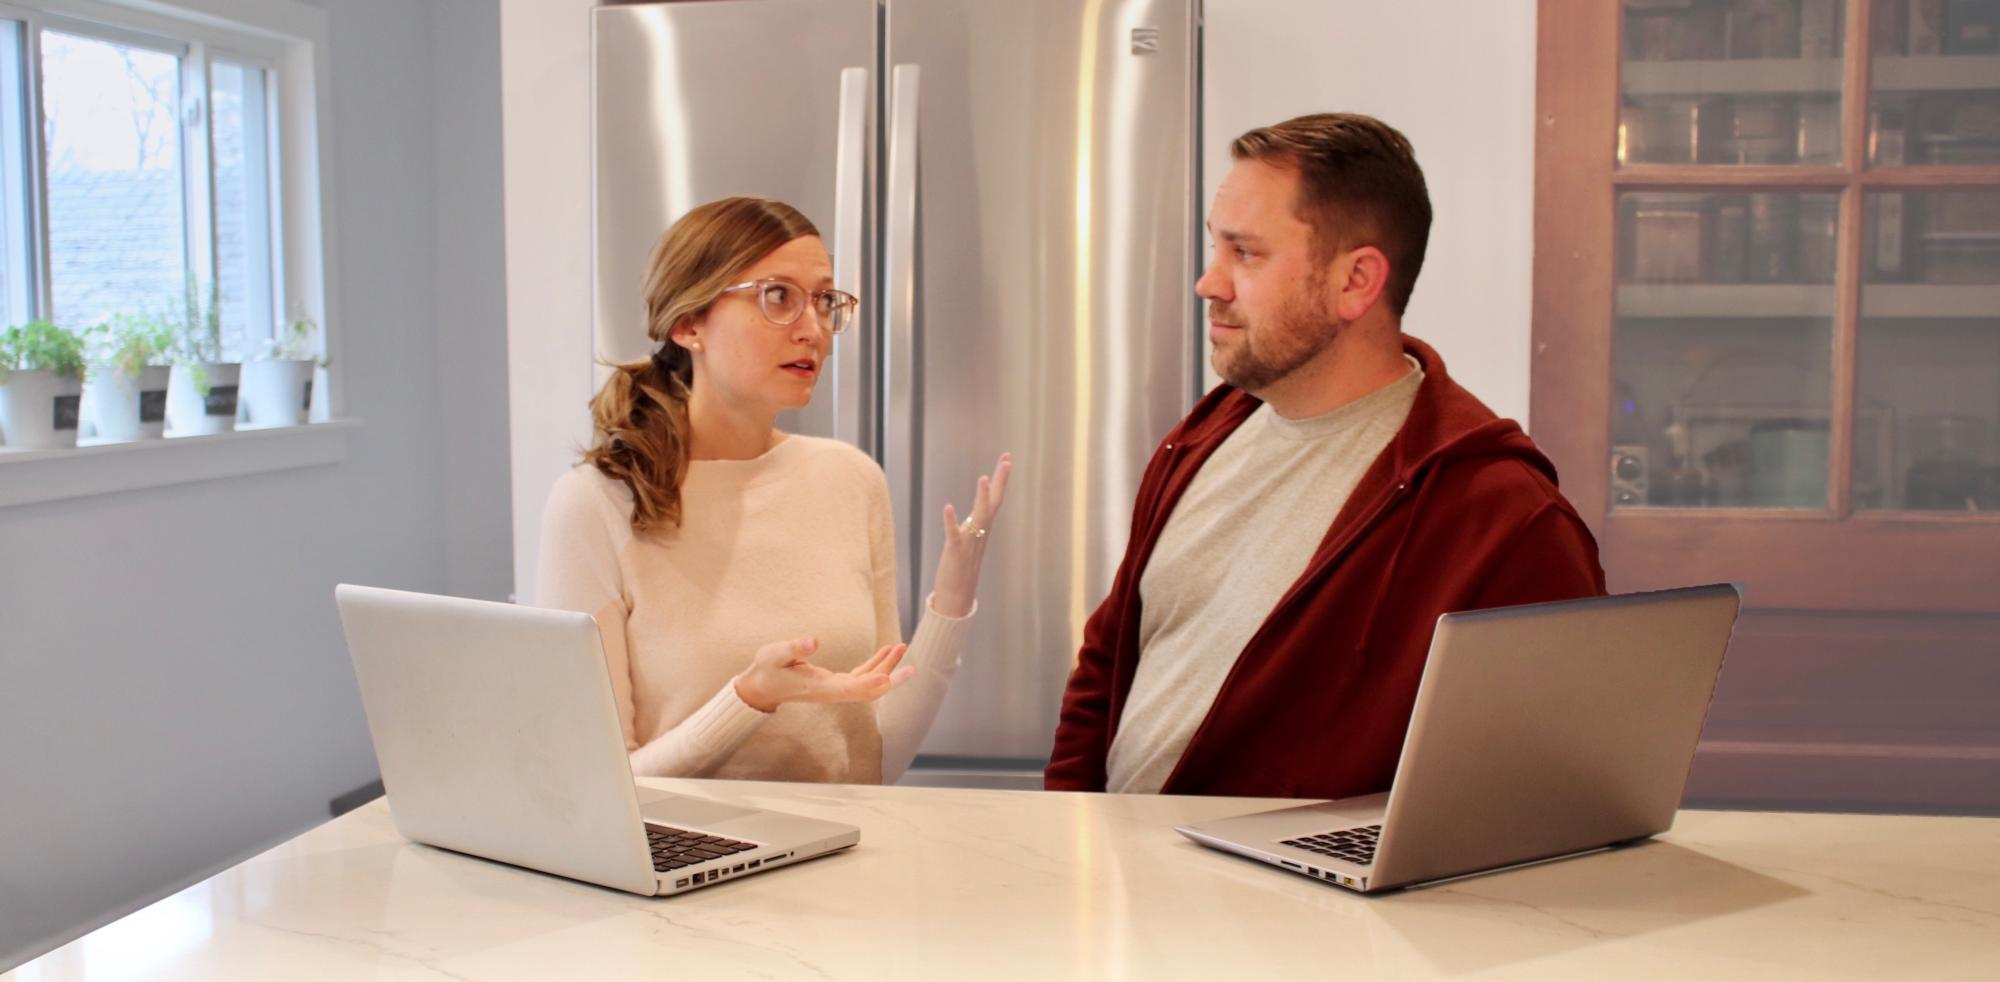 Picture of two people having a conversation in front of their computers.